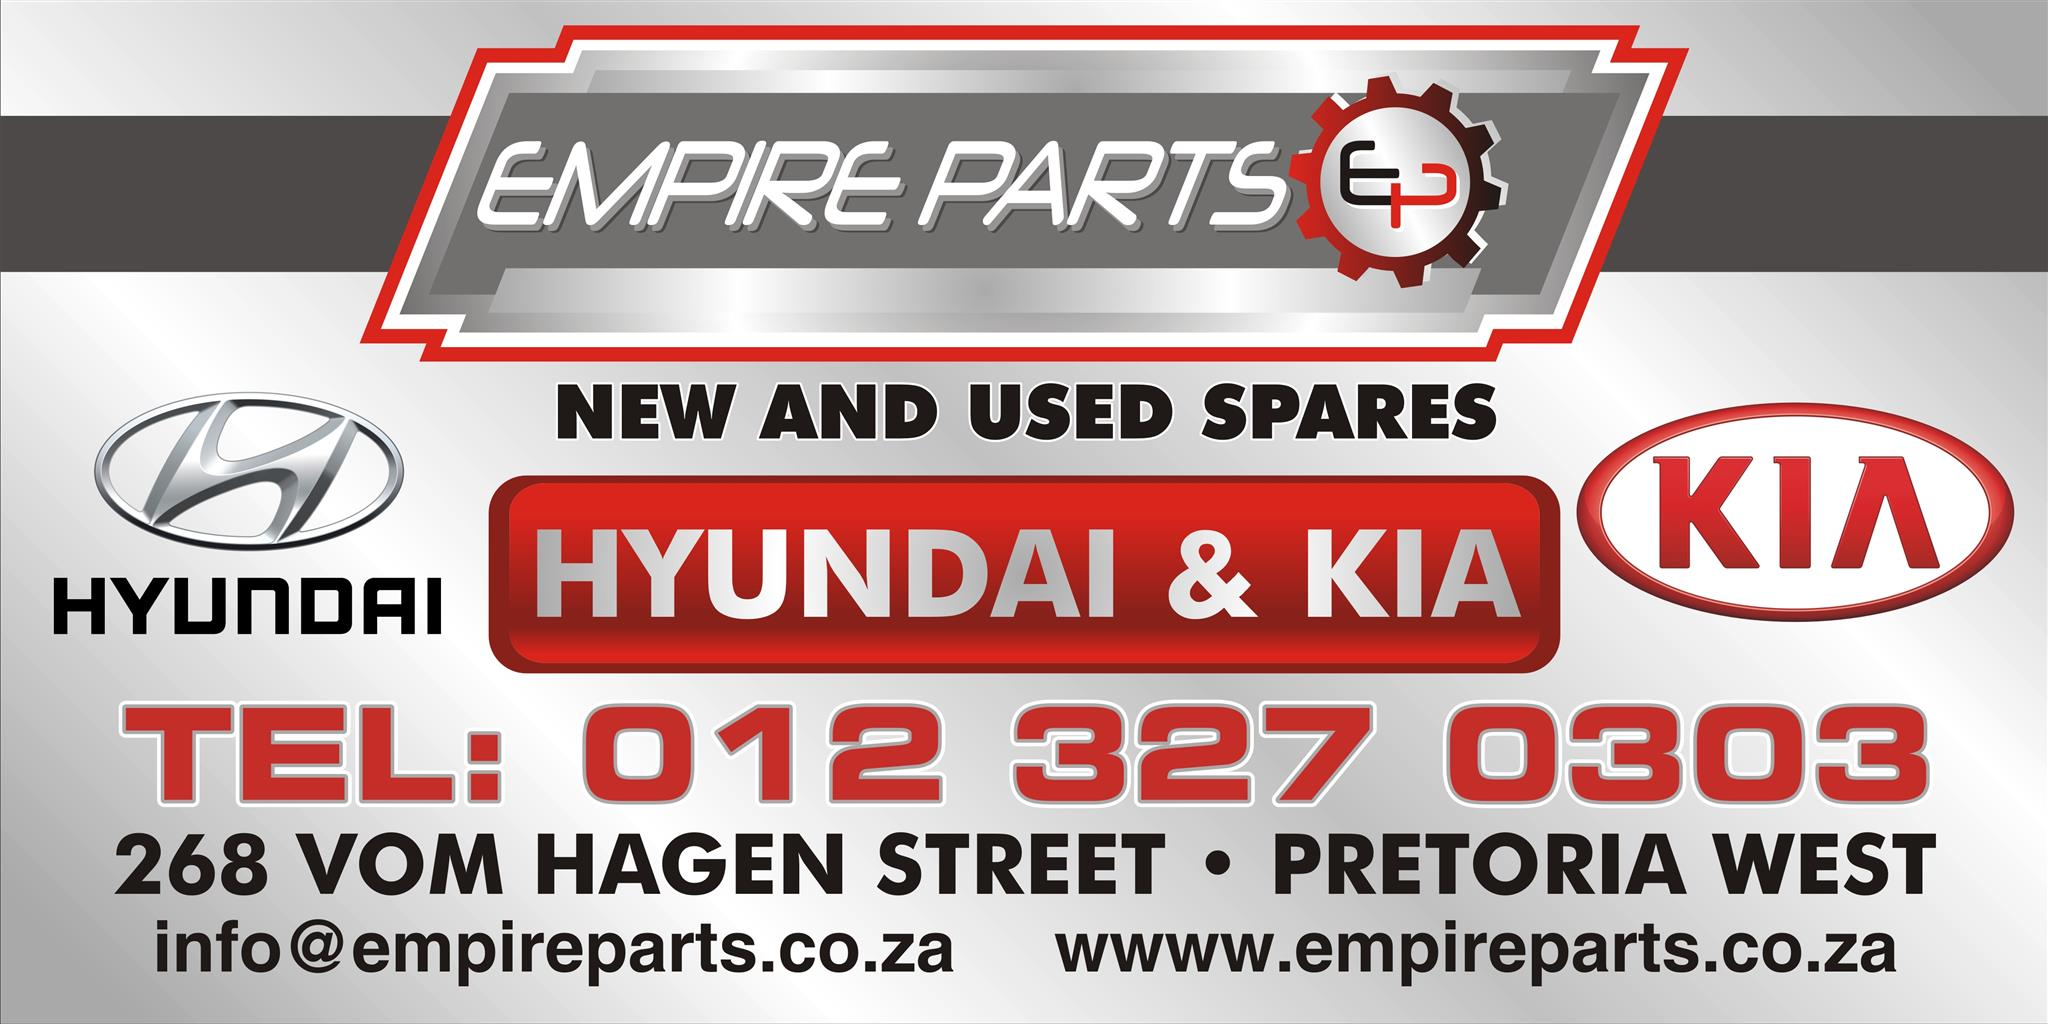 Hyundai and Kia New and Used spares and parts